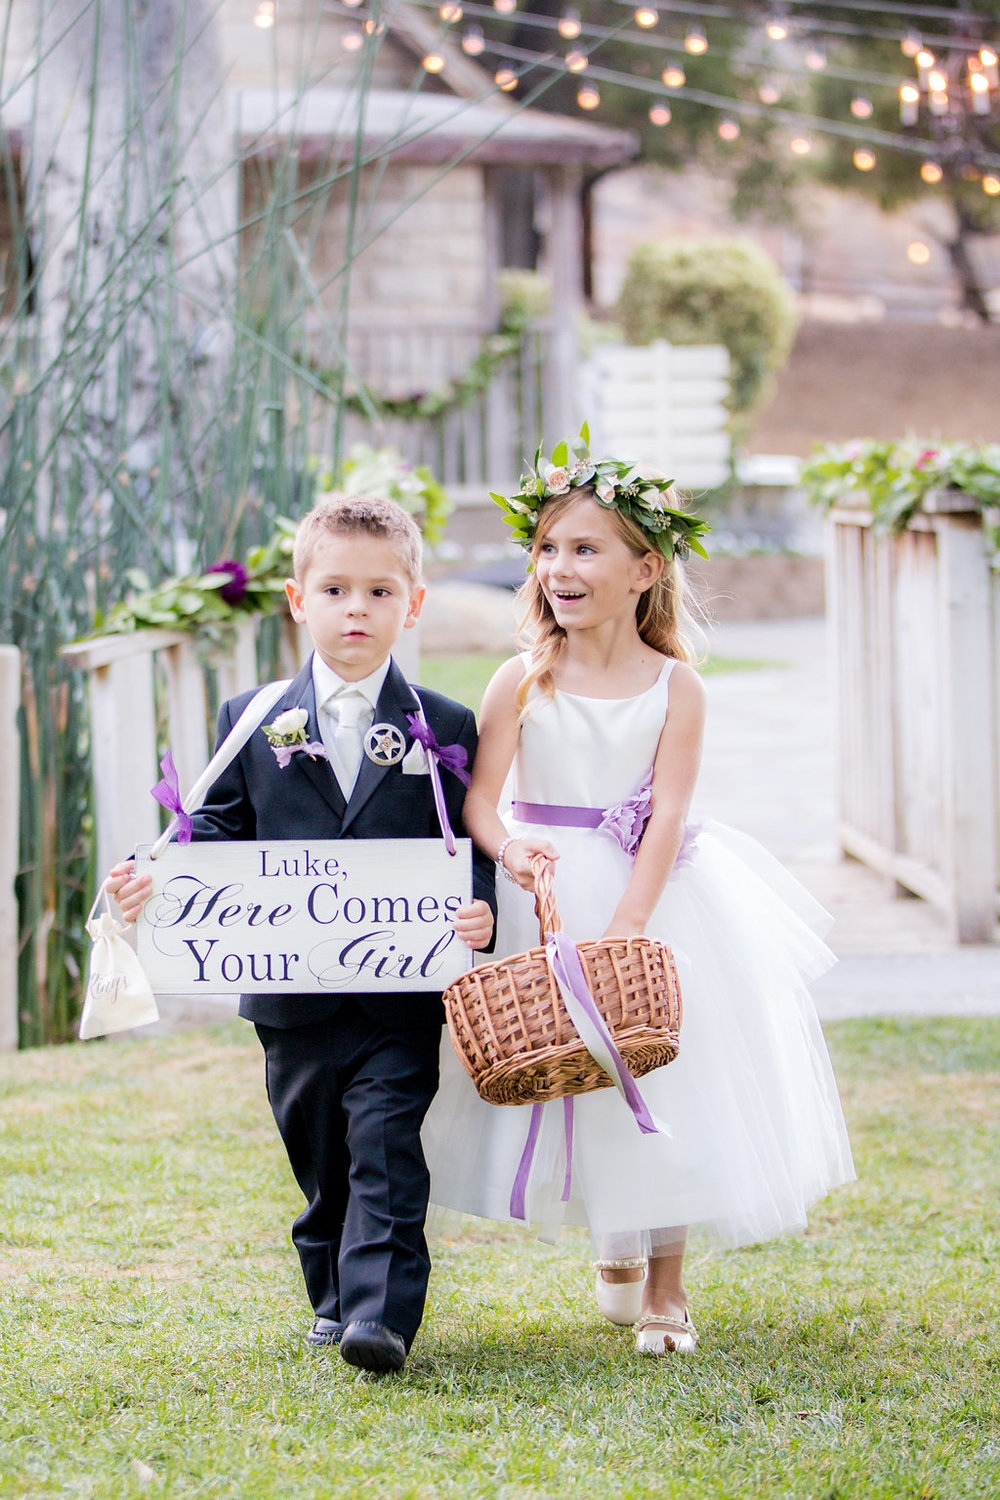 Rustic Elegance in Shades of Plum | Temecula Creek Inn | Honey Photographs by Alyss